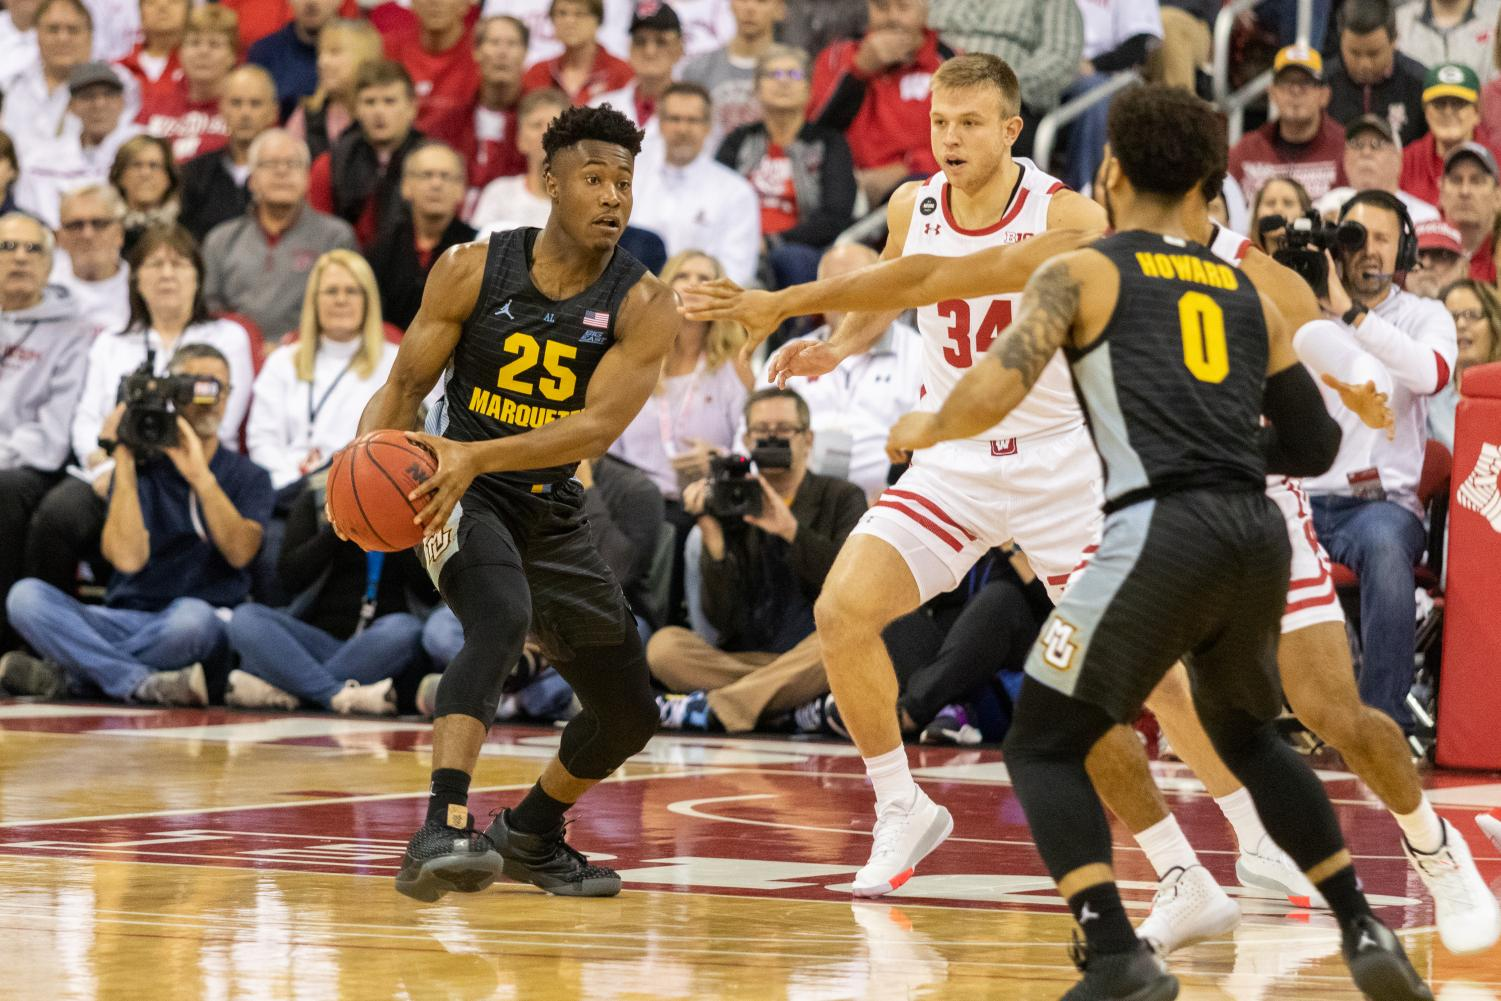 Redshirt junior guard Koby McEwen (25) passes the ball to teammate and senior guard Markus Howard (0) in MU's 77-61 loss to Wisconsin Nov. 17 at the Kohl Center in Madison.